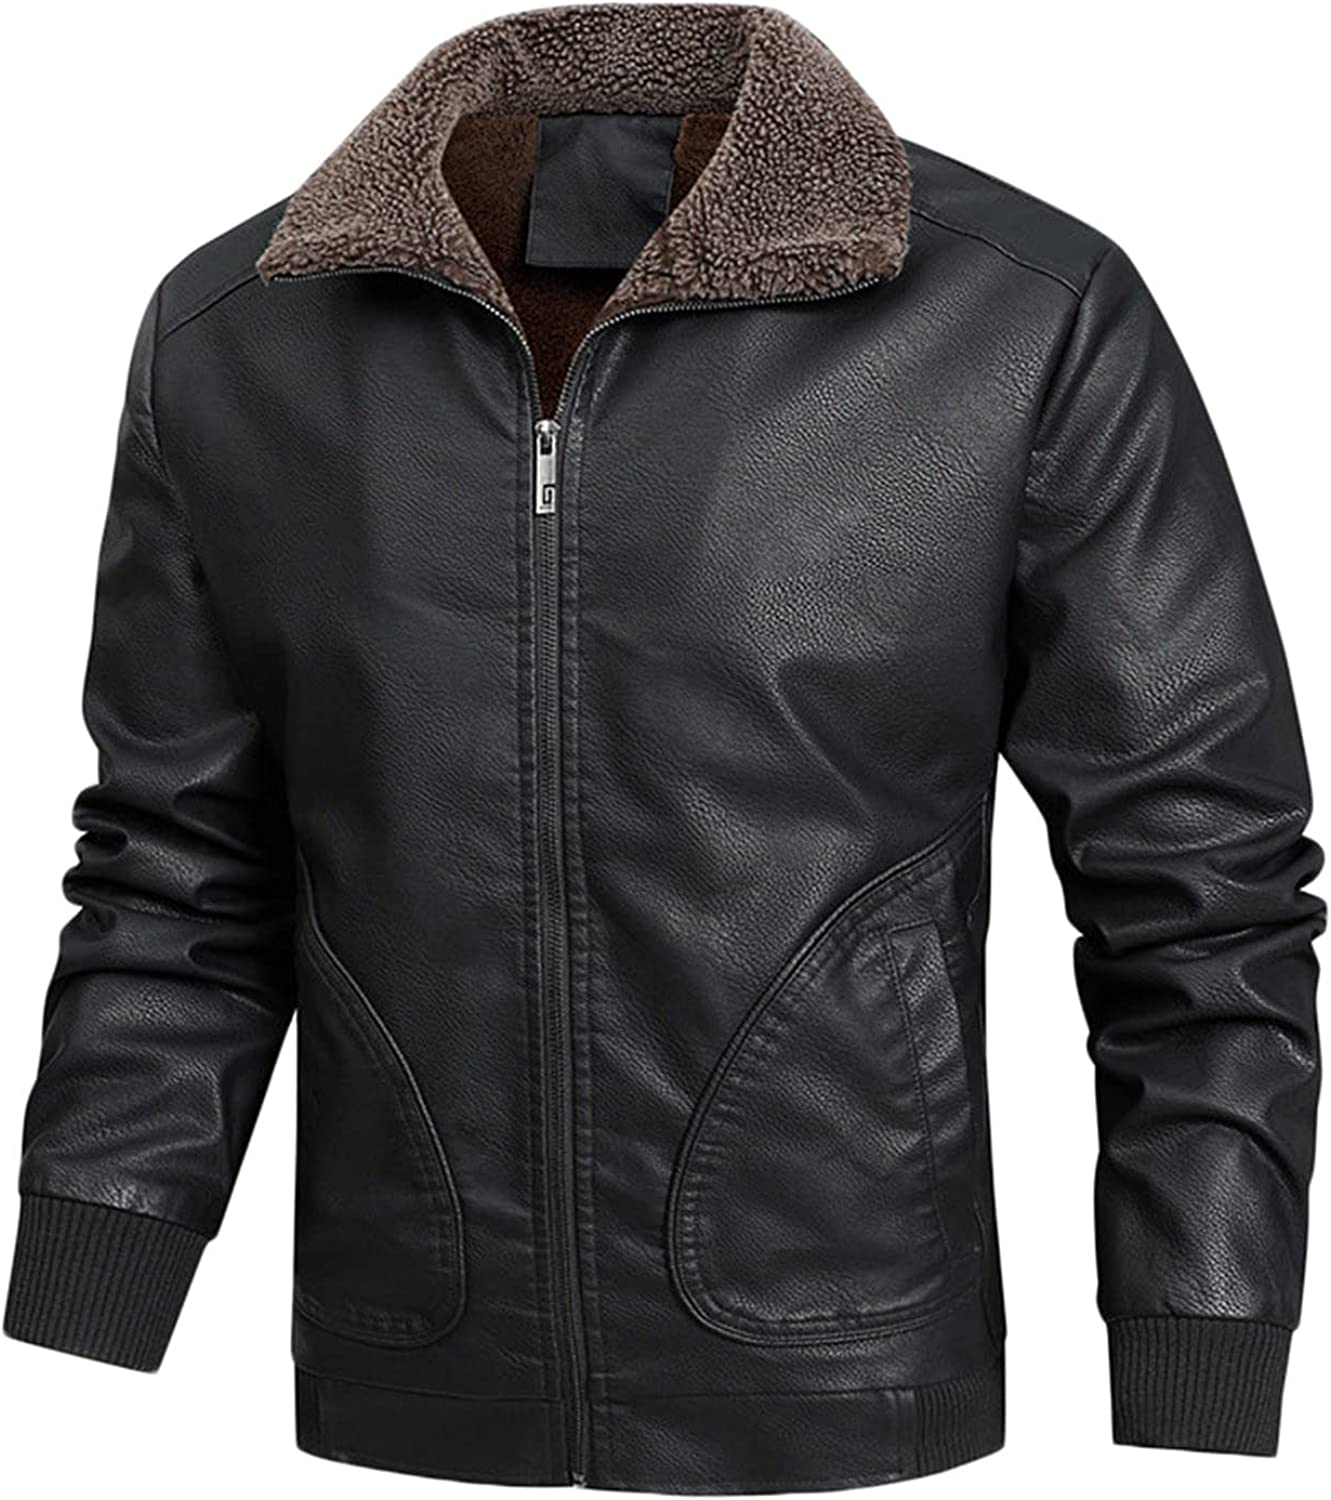 Men's Casual Stand Collar Slim PU Leather Softshell Bomber Jacket Coat Outwear